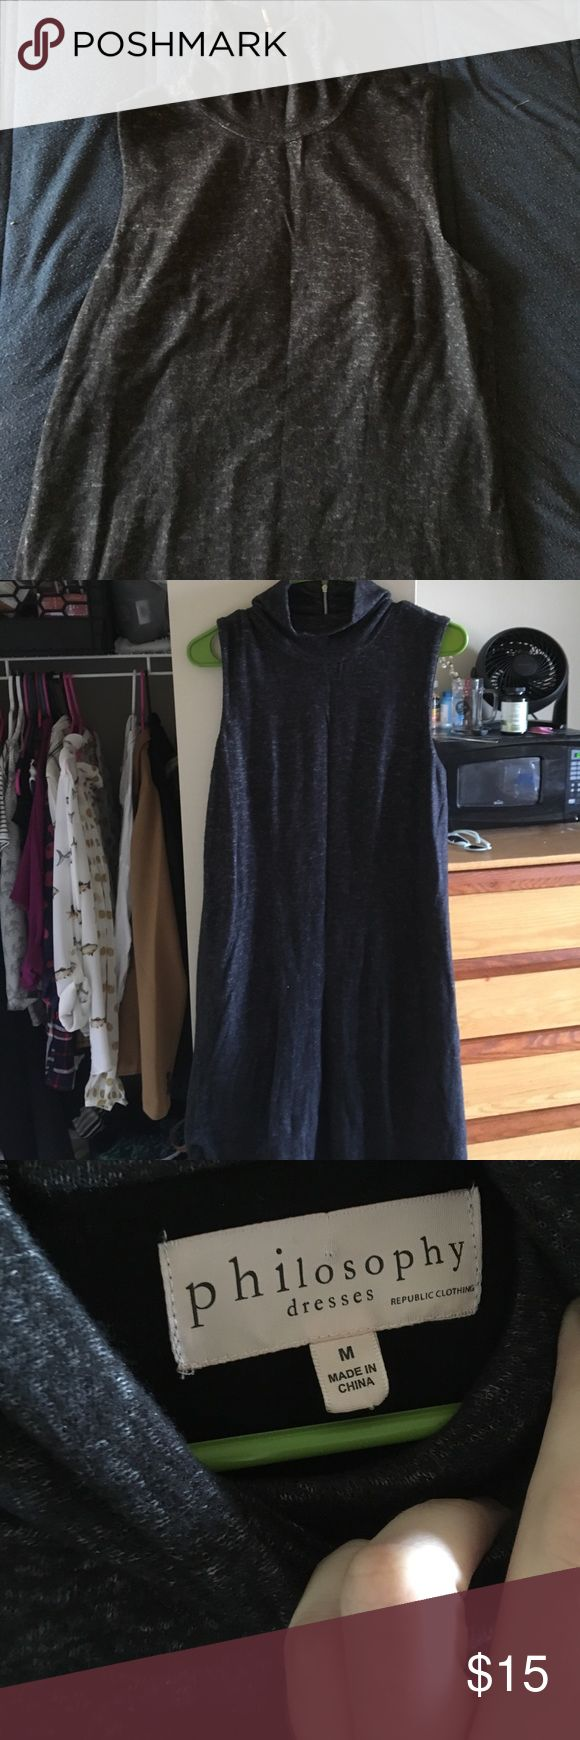 Philosophy Dress Dark grey dress. Very soft. Never worn but no tags Philosophy Dresses